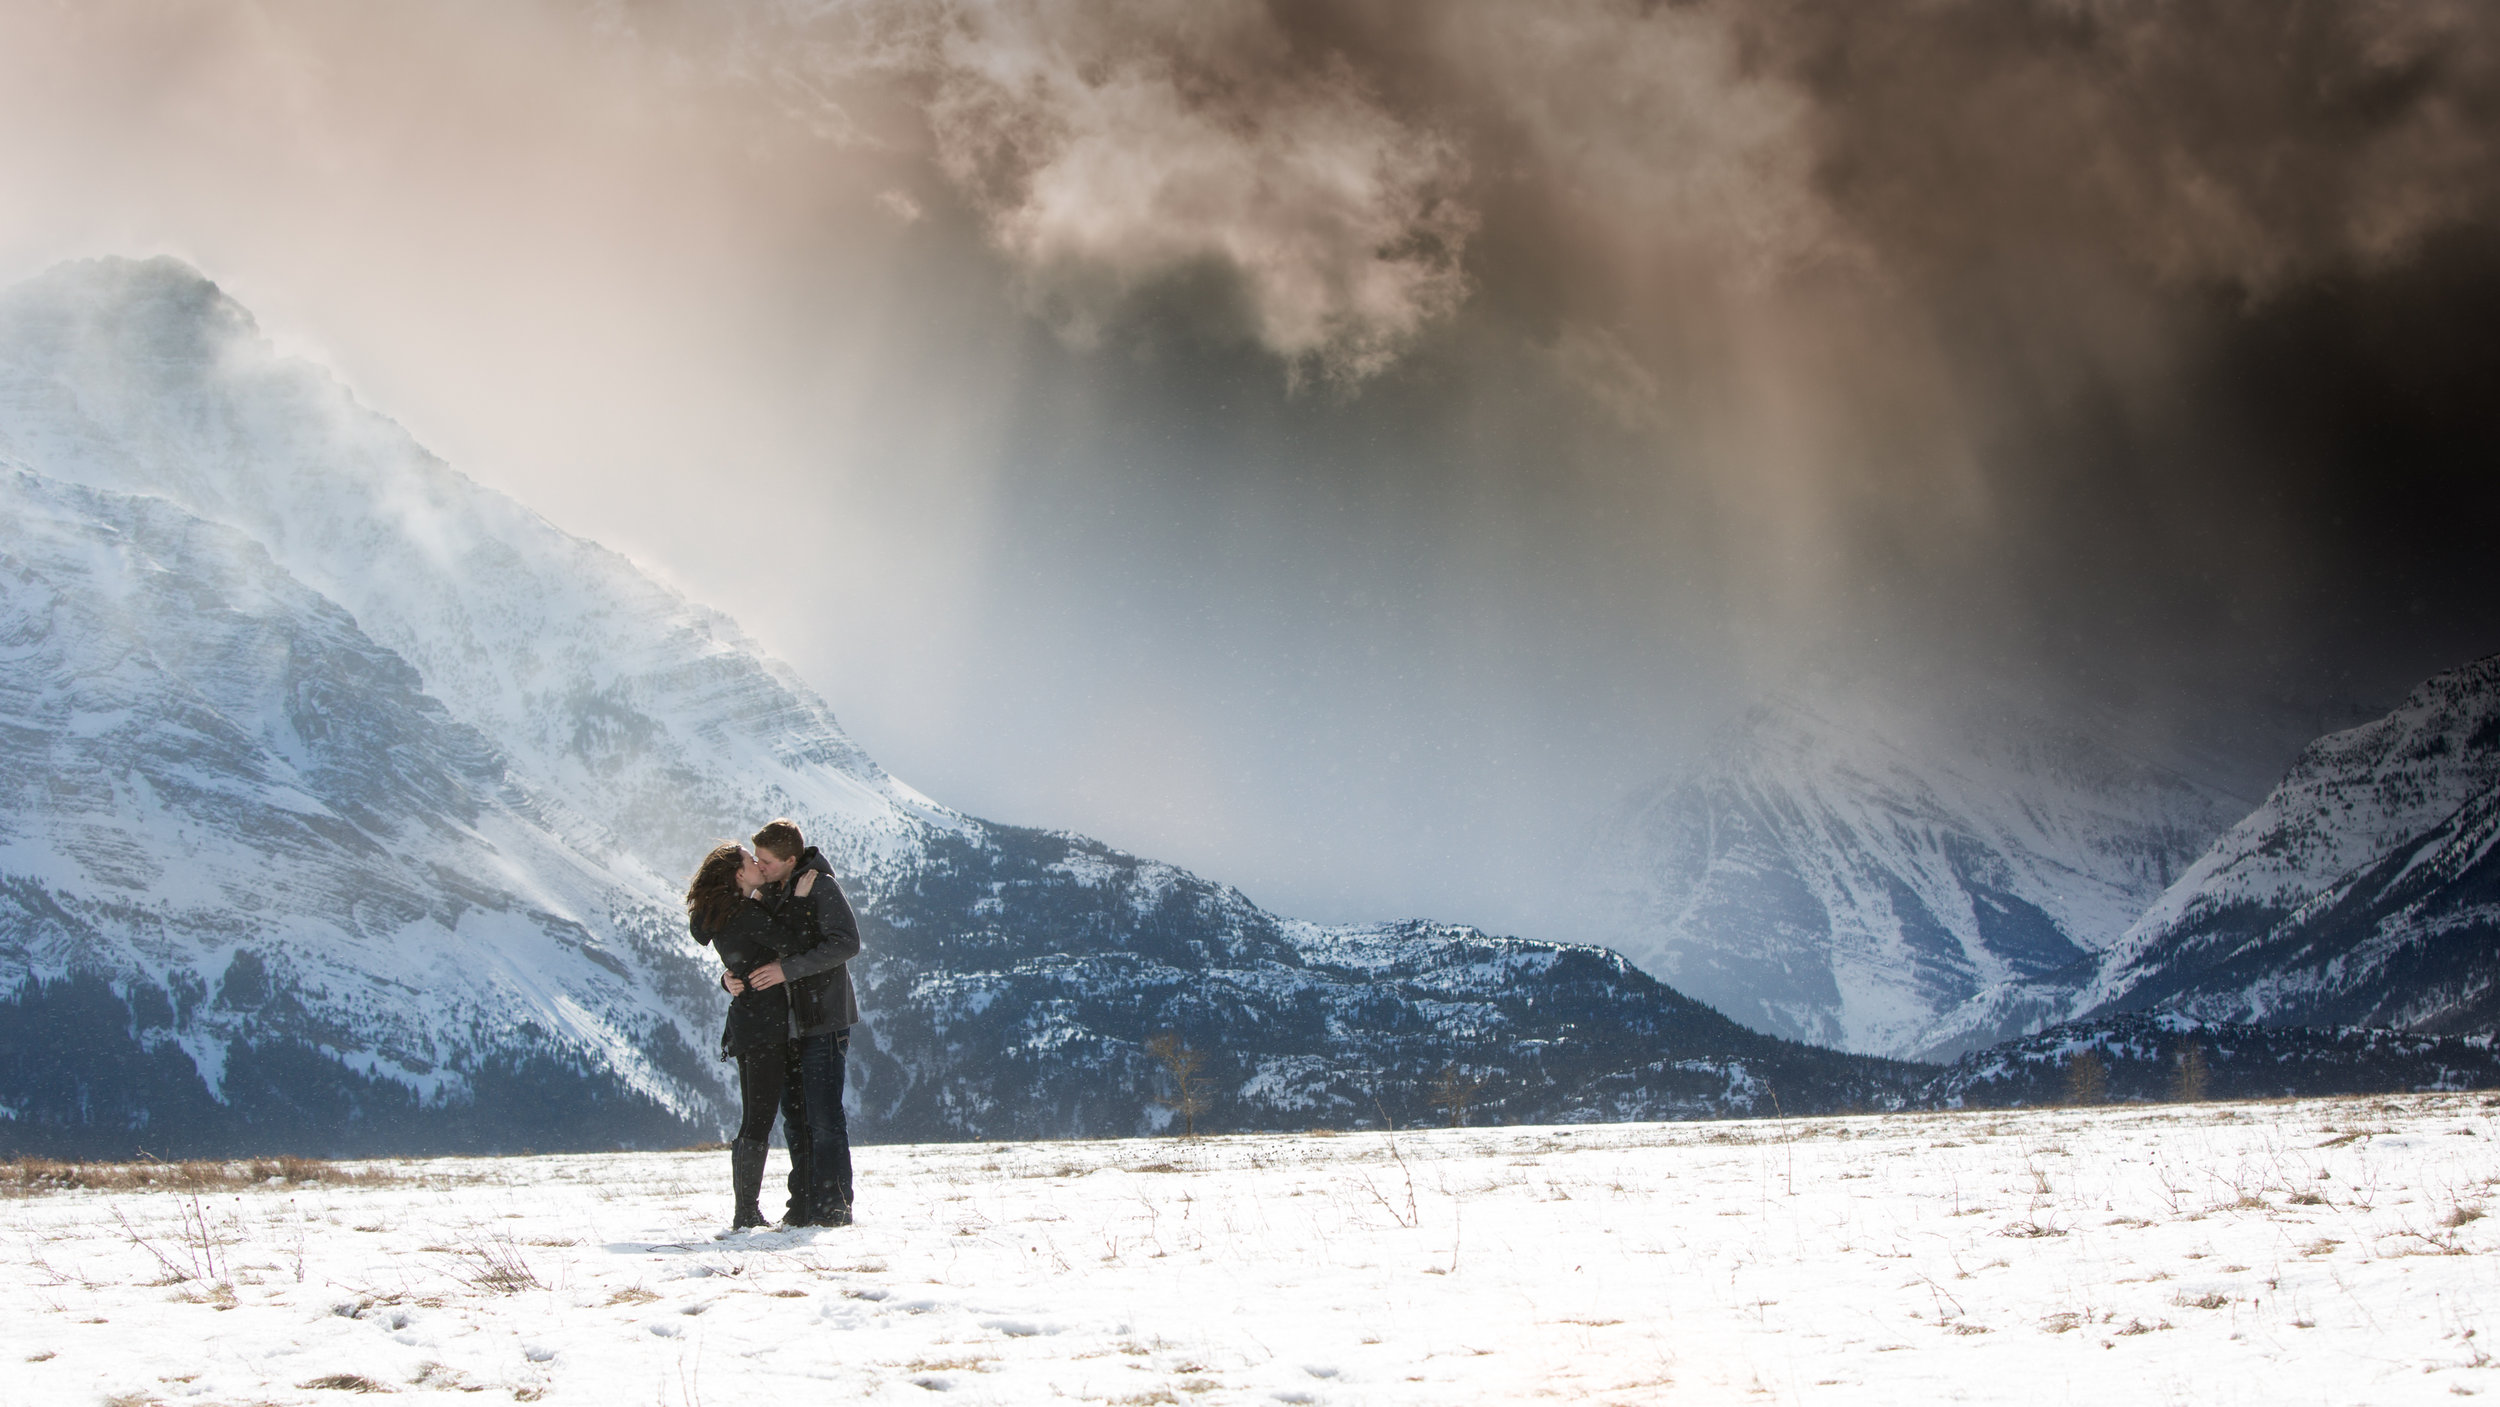 Just as Eric and Brianne step into the field, the wind kicked up and sun broke through the clouds, it was beautiful!